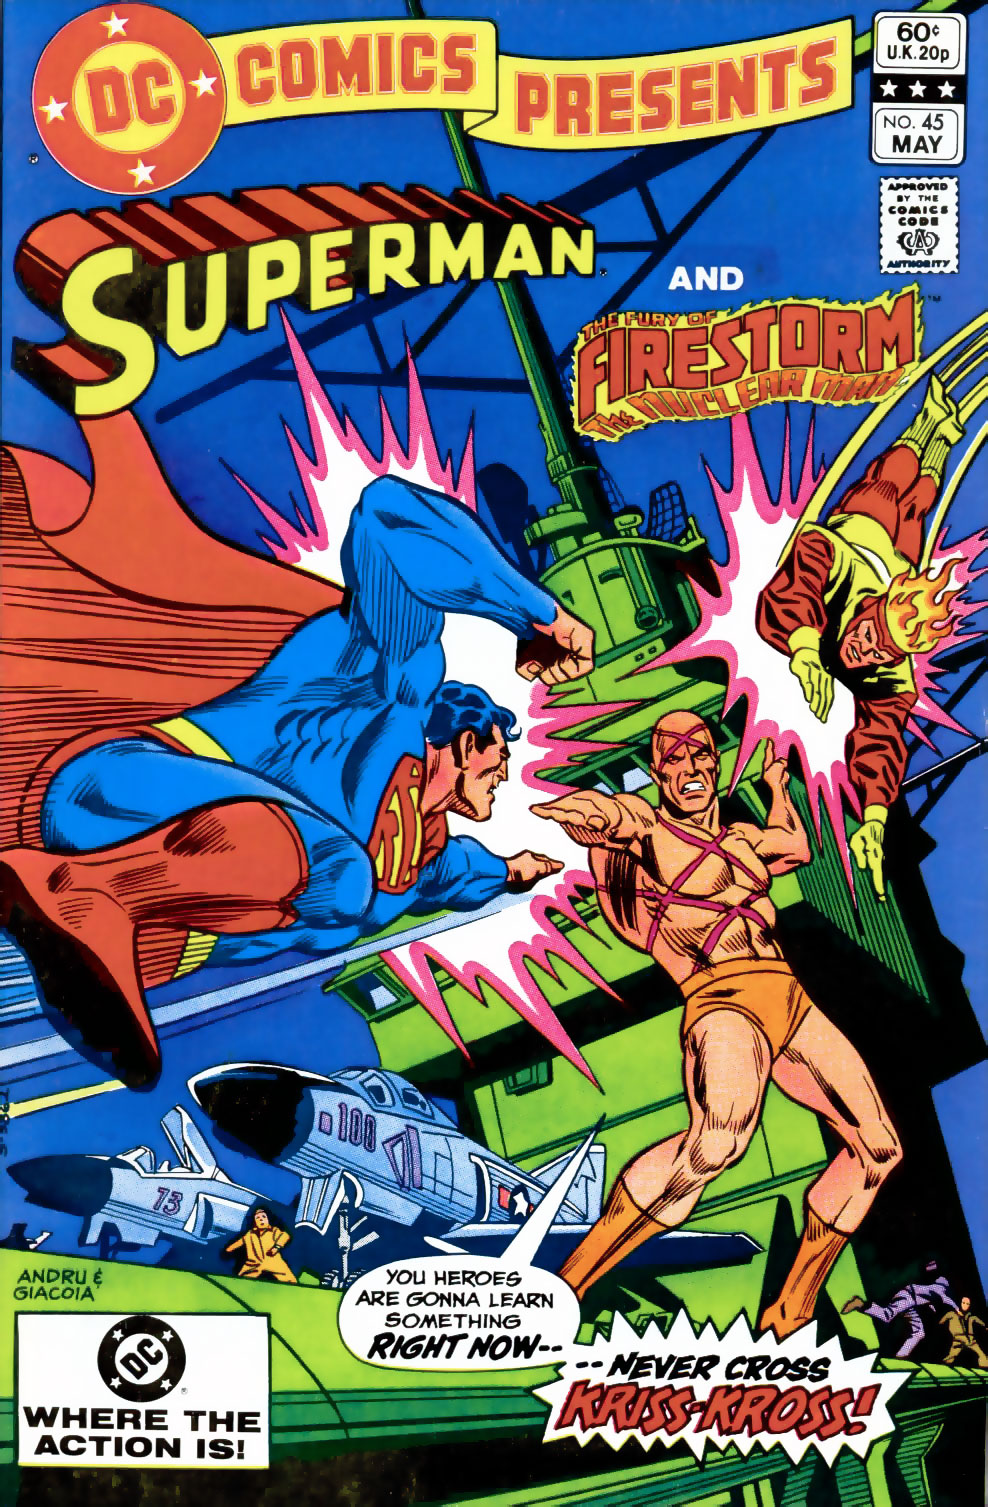 DC Comics Presents #45 featuring Superman and Firestorm